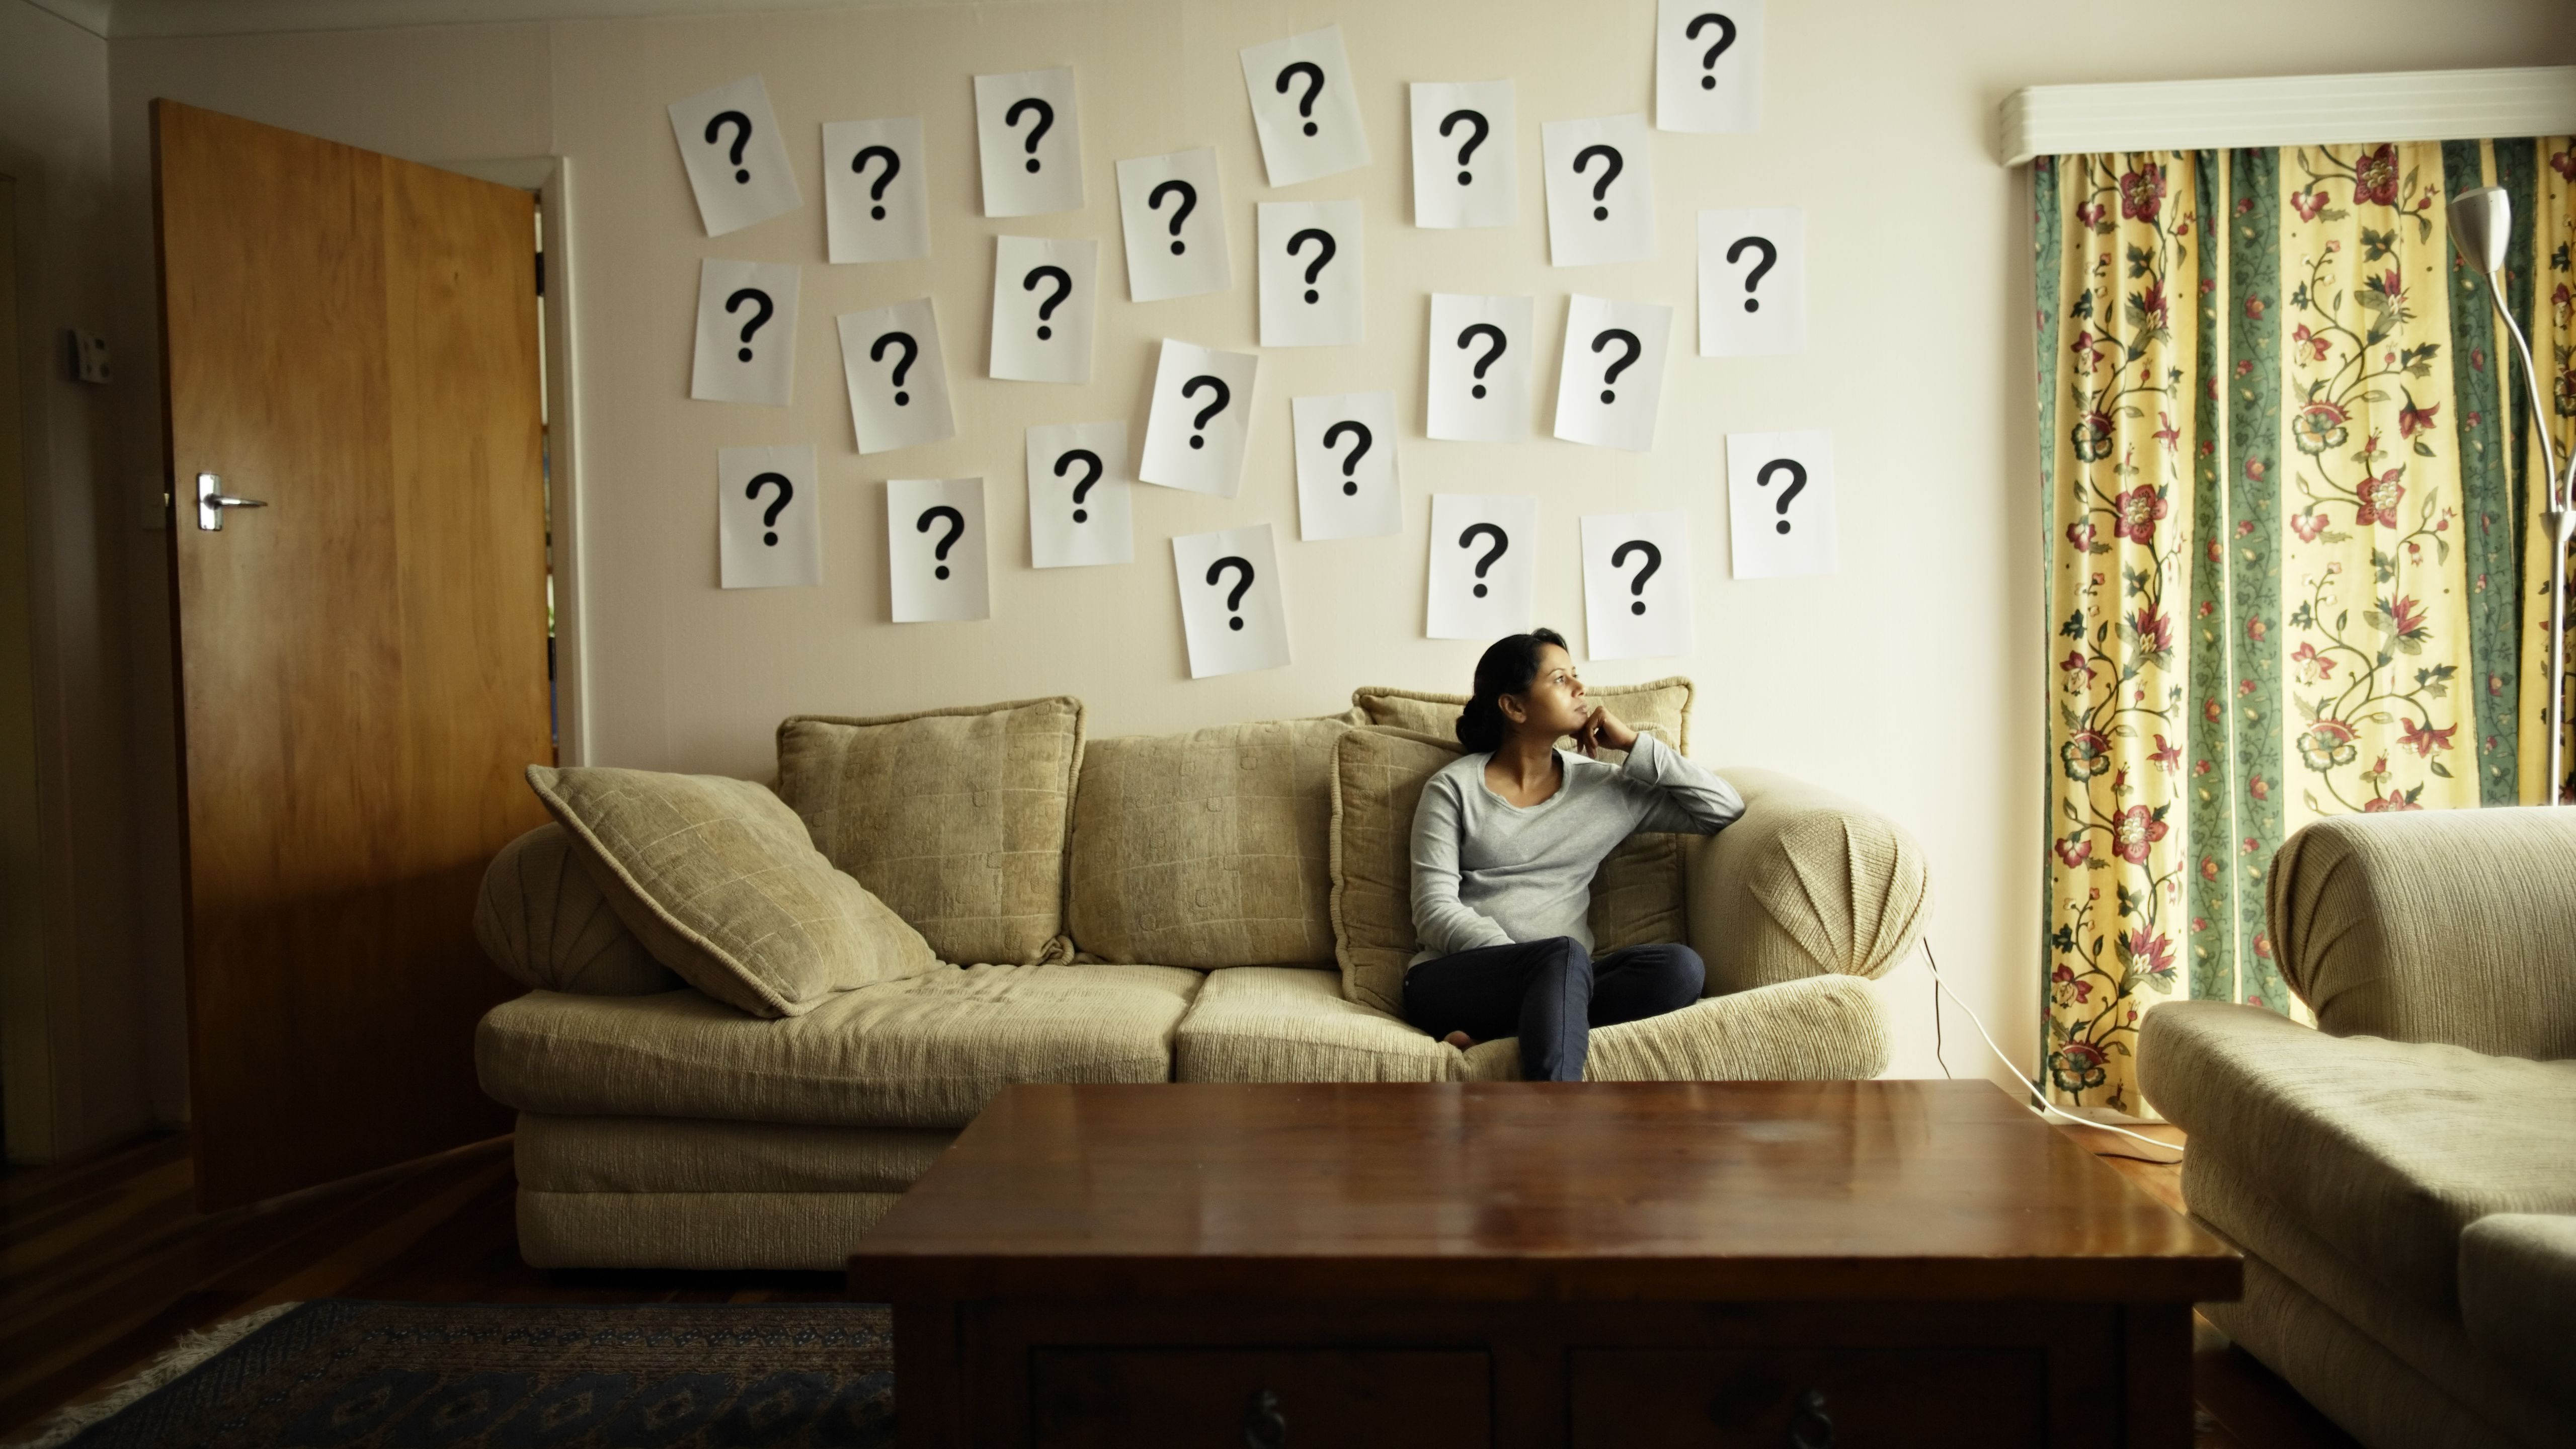 Learn How to Ask Questions in English as an ESL Student